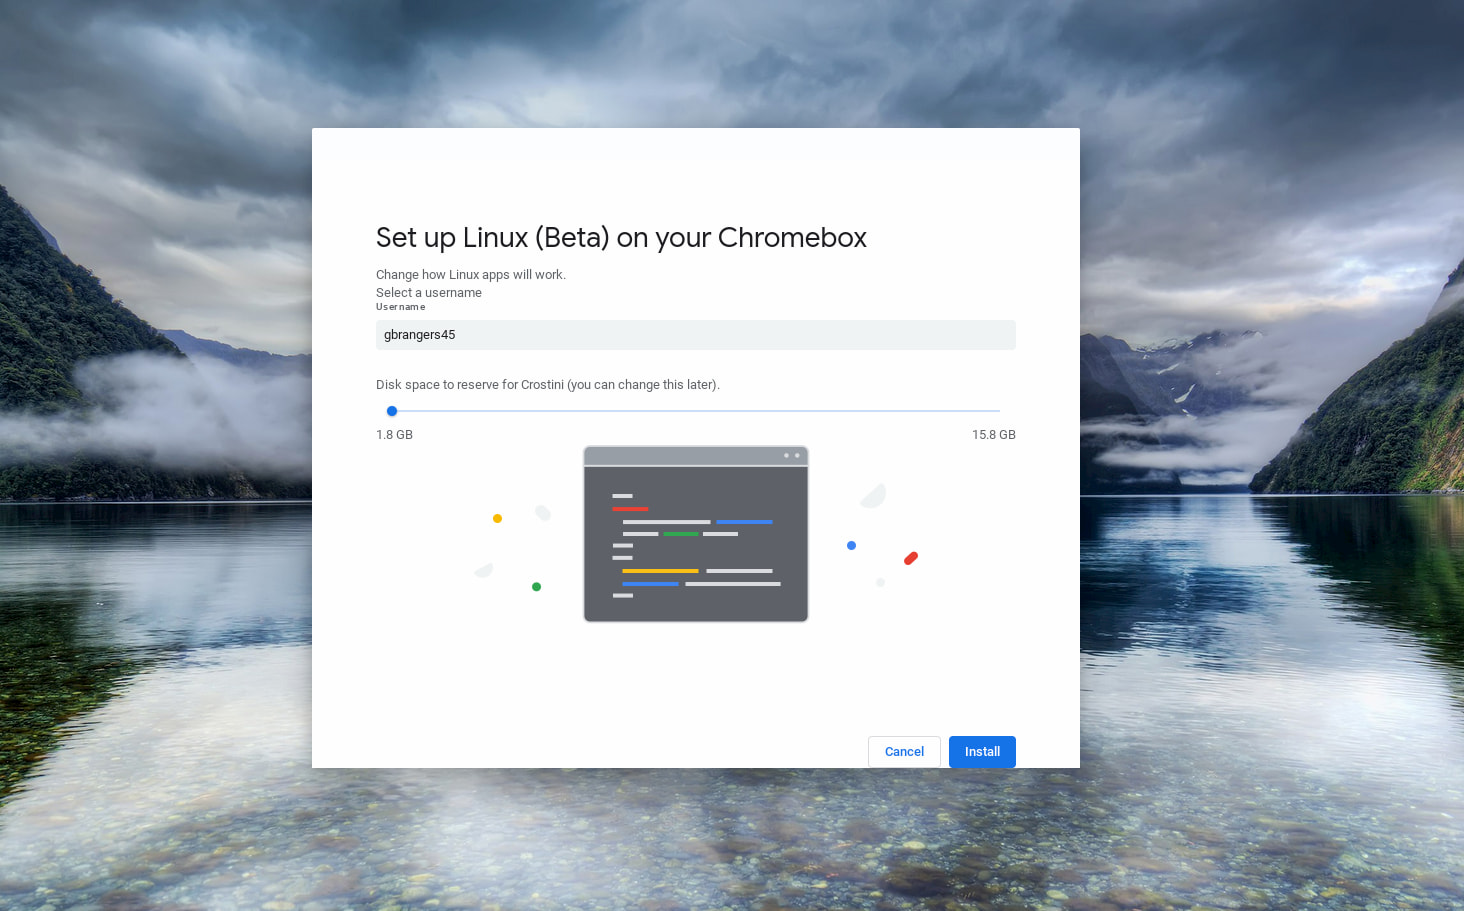 Linux on Chrome OS: Disk resizing and custom username now working in Canary Channel